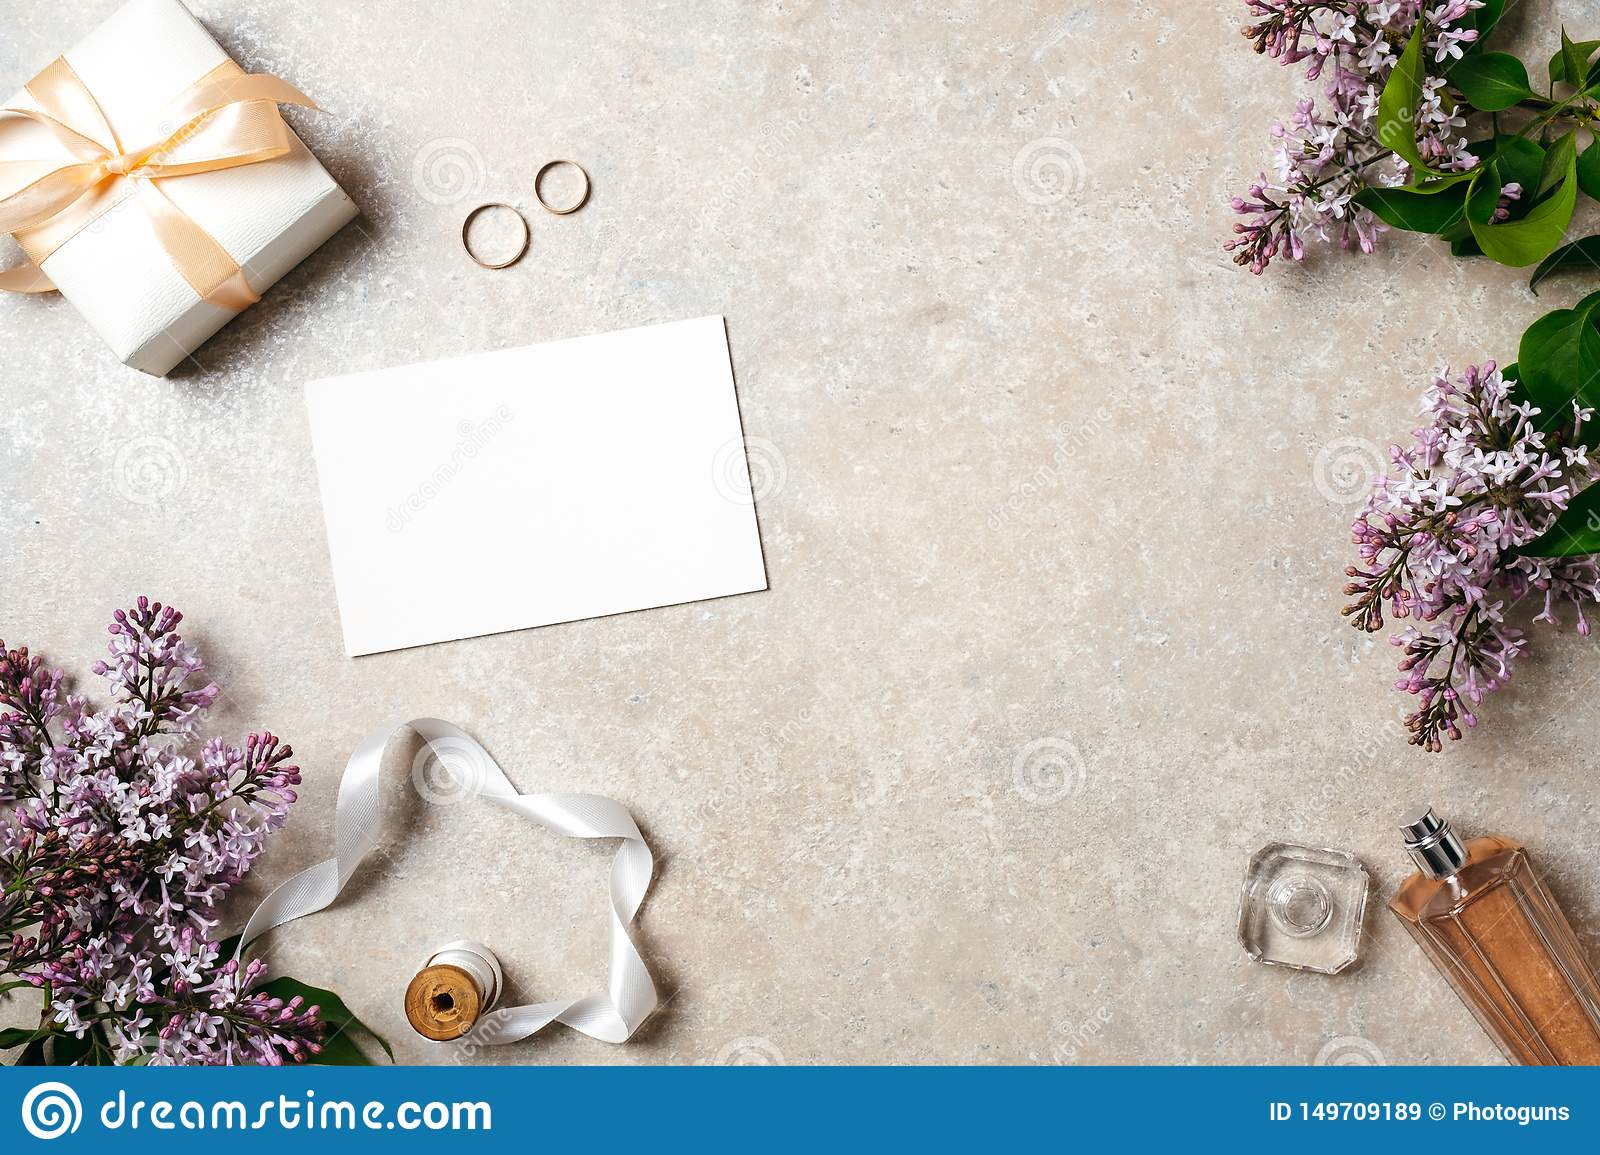 Feminine desk with wedding accessories, blank paper card, rings and spring lilac flowers. Wedding concept, invitation card mock up